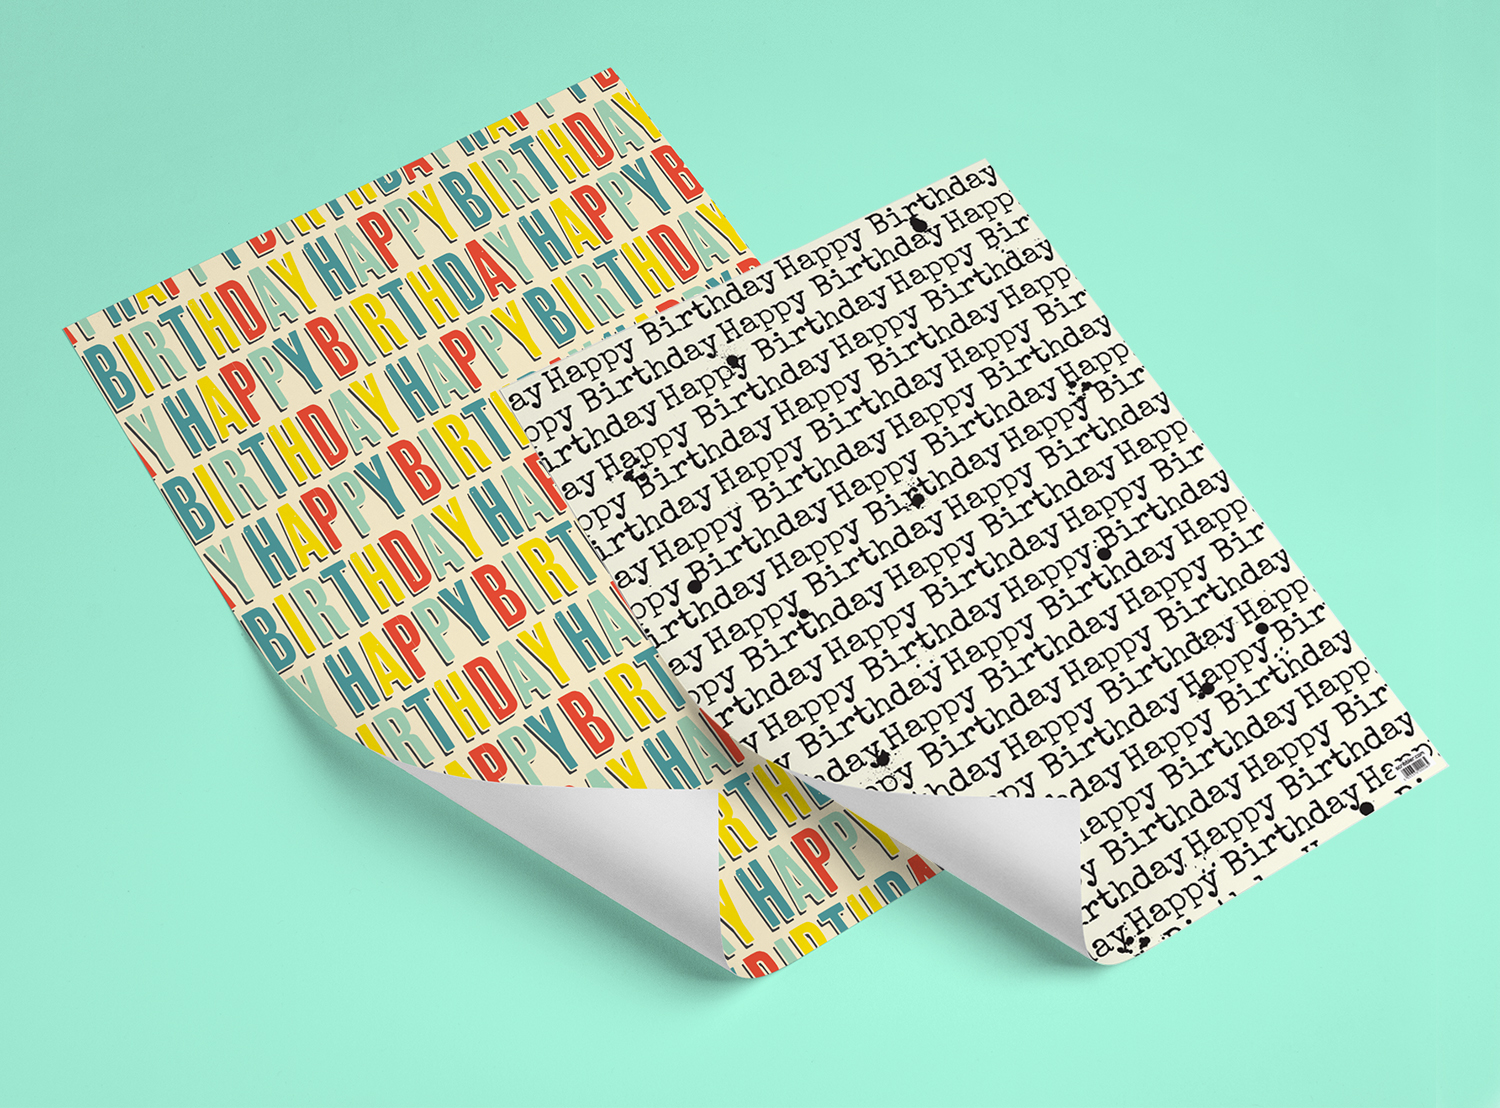 Wrapping Paper / Printed on 110gsm Uncoated Stock